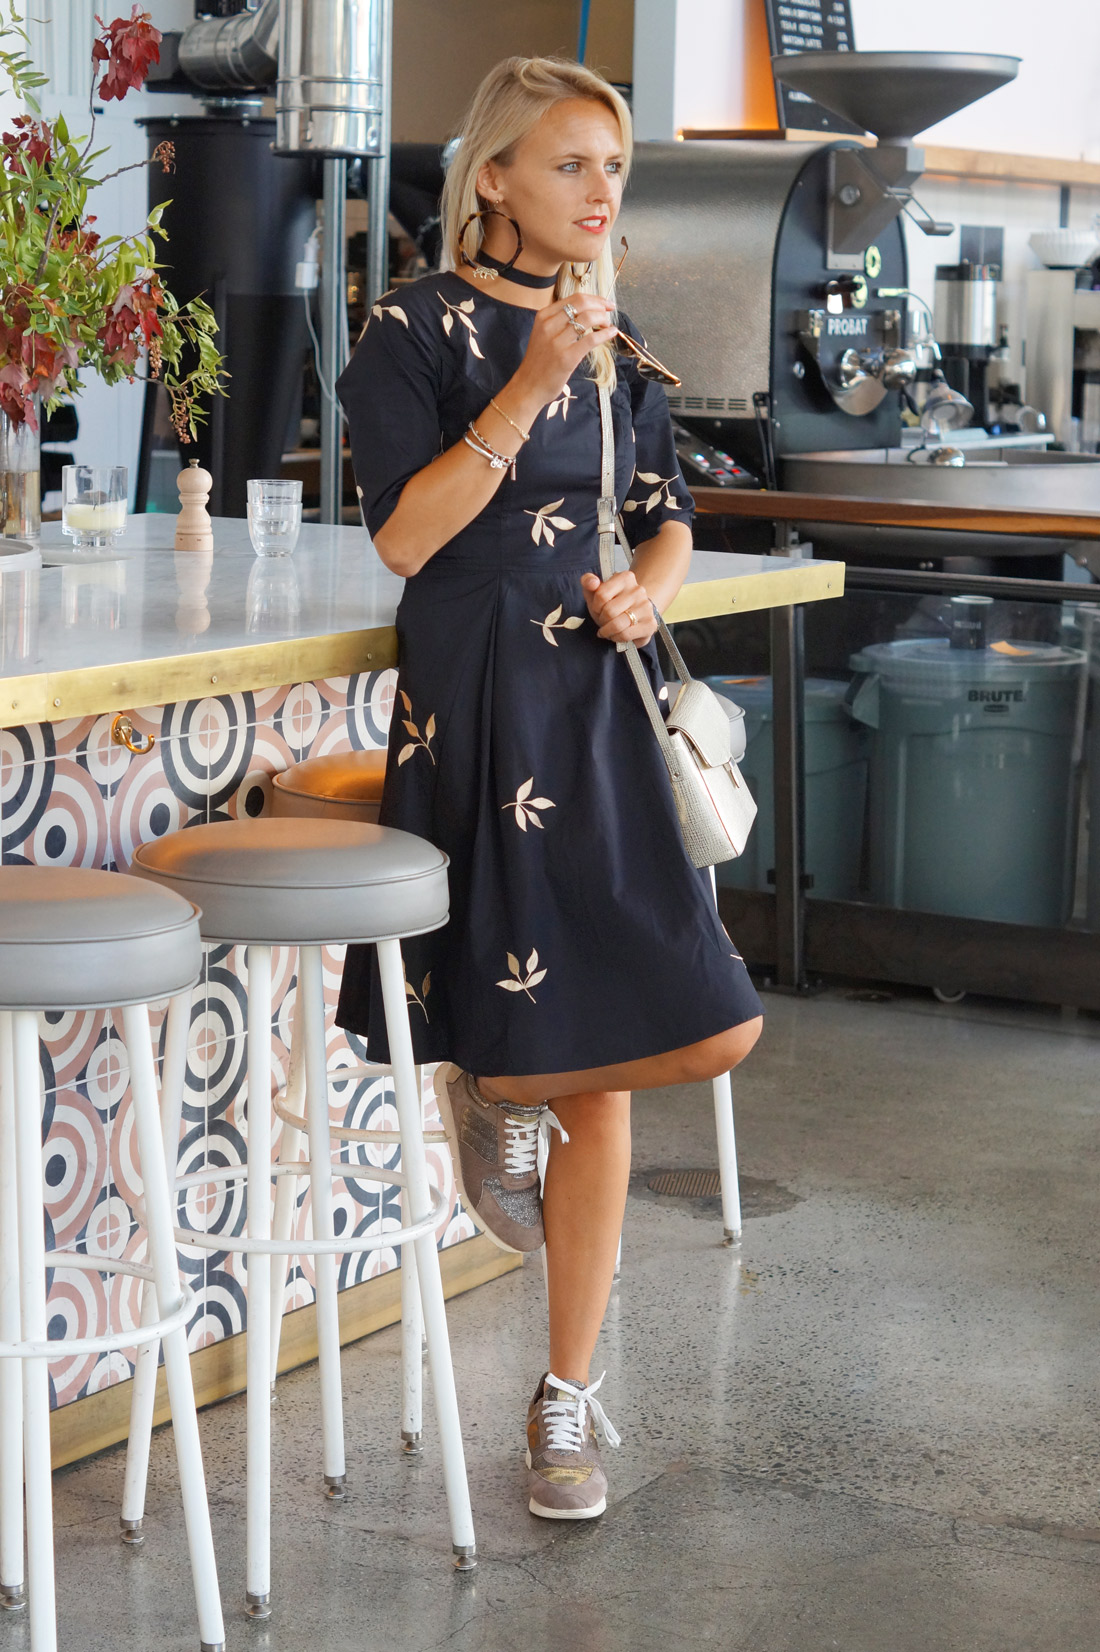 Bag-at-you---Fashion-blog---Elegant-feminine-style